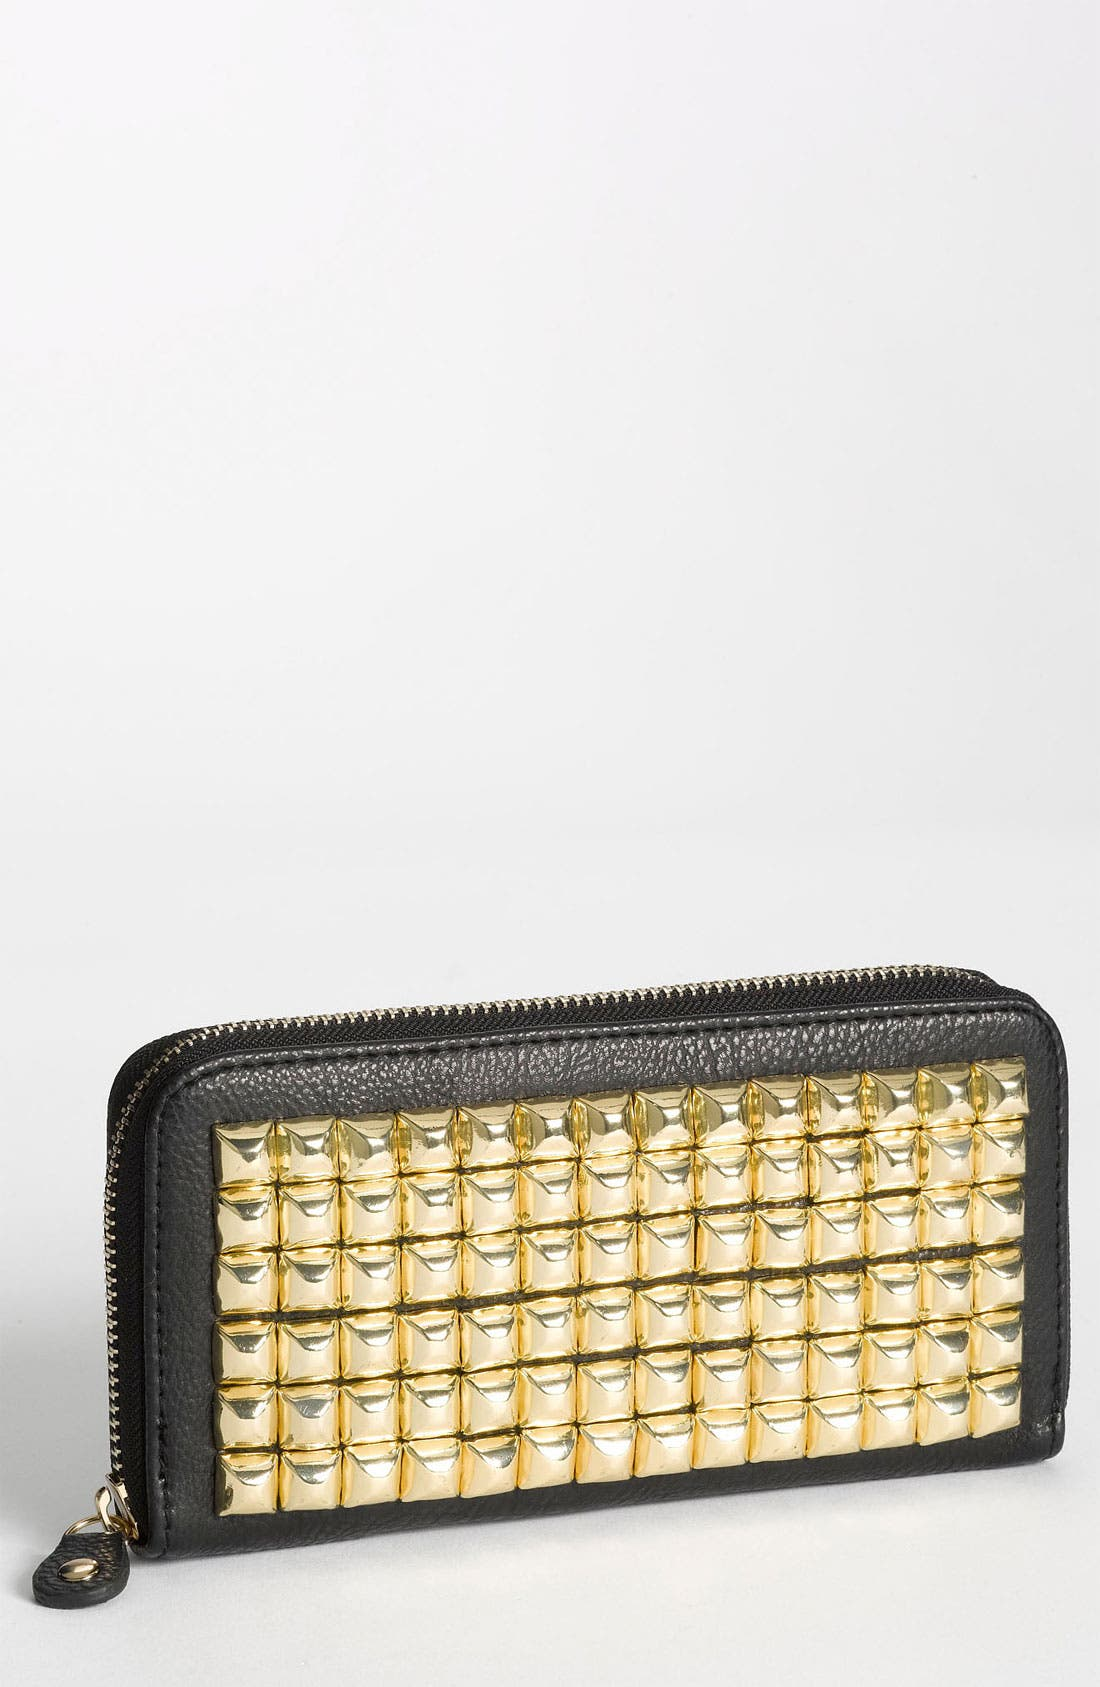 Main Image - Under One Sky Studded Wallet Clutch